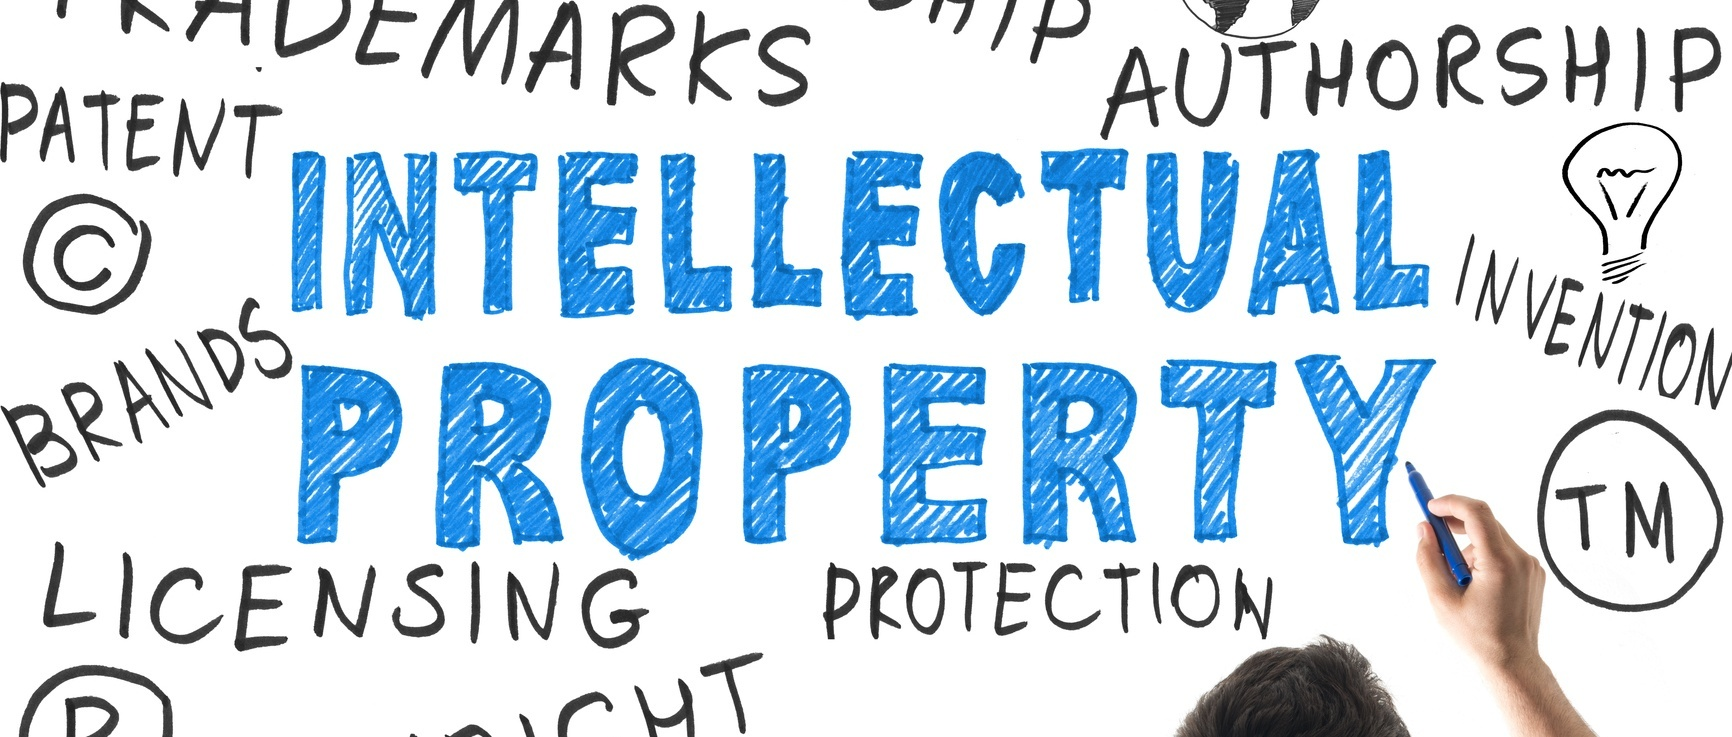 intellectual property types and legalities Lawinfo provides free intellectual property legal information what type of questions should i ask an intellectual property law attorney read on to find out.